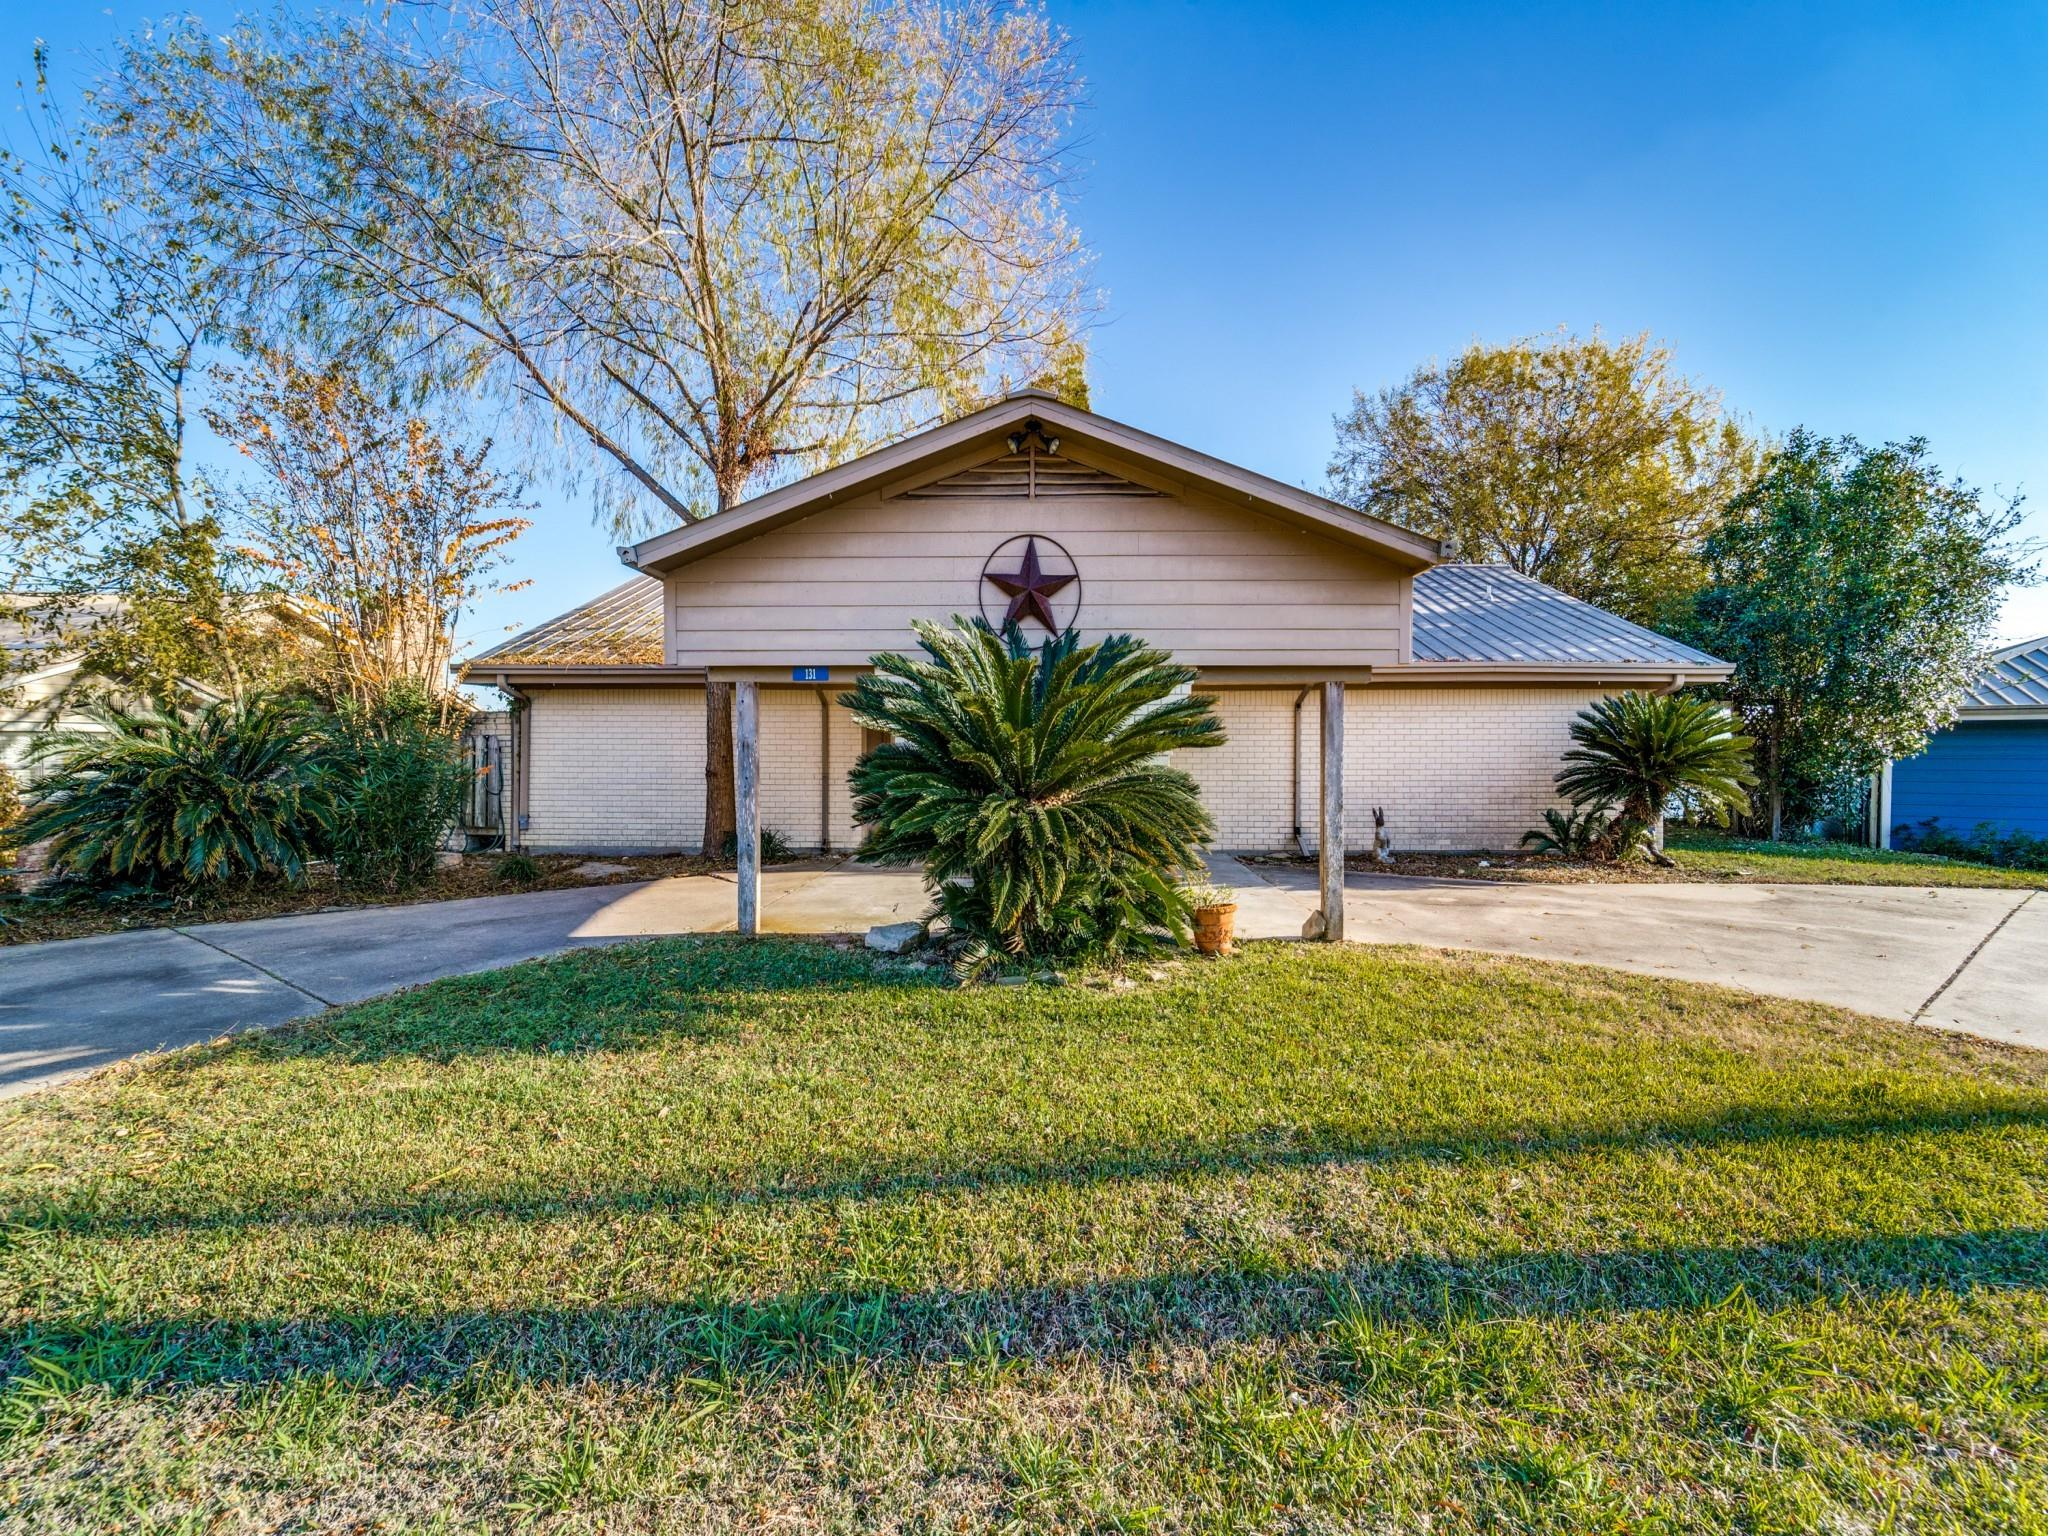 131 W Lakeview Drive Property Photo - Point Blank, TX real estate listing